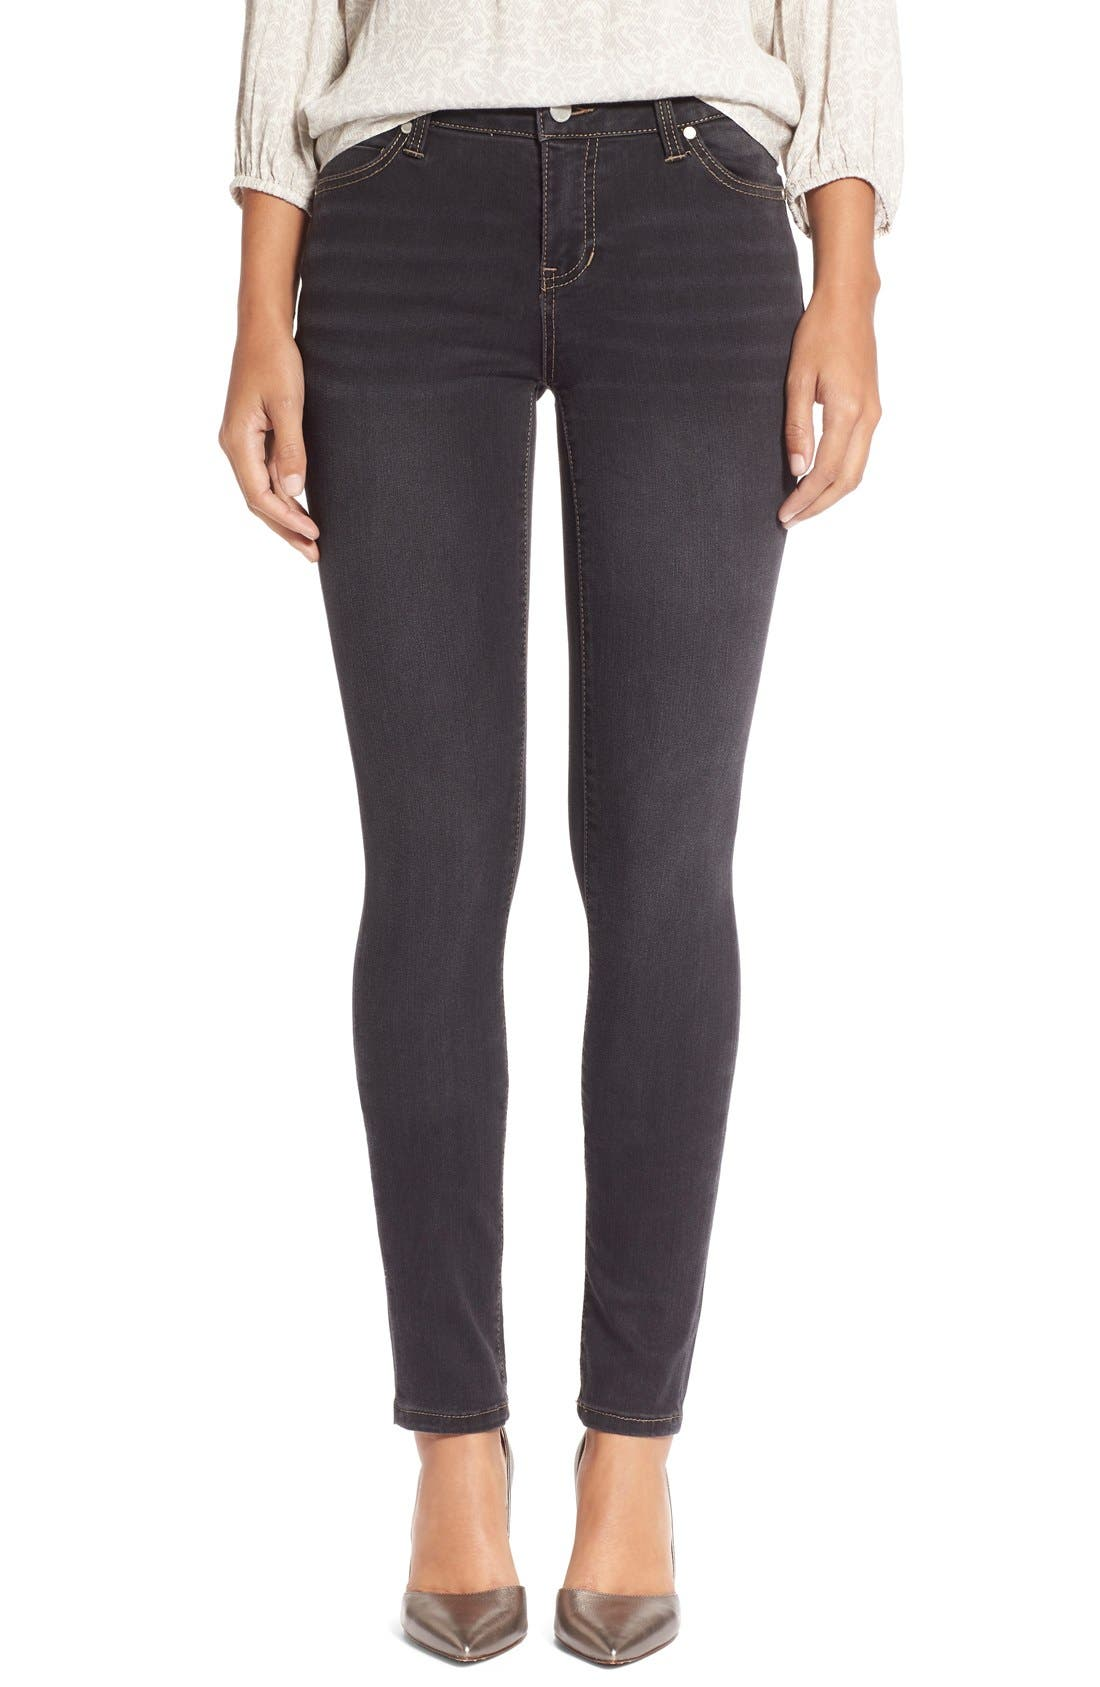 LIVERPOOL JEANS COMPANY 'Abby' Stretch Skinny Jeans